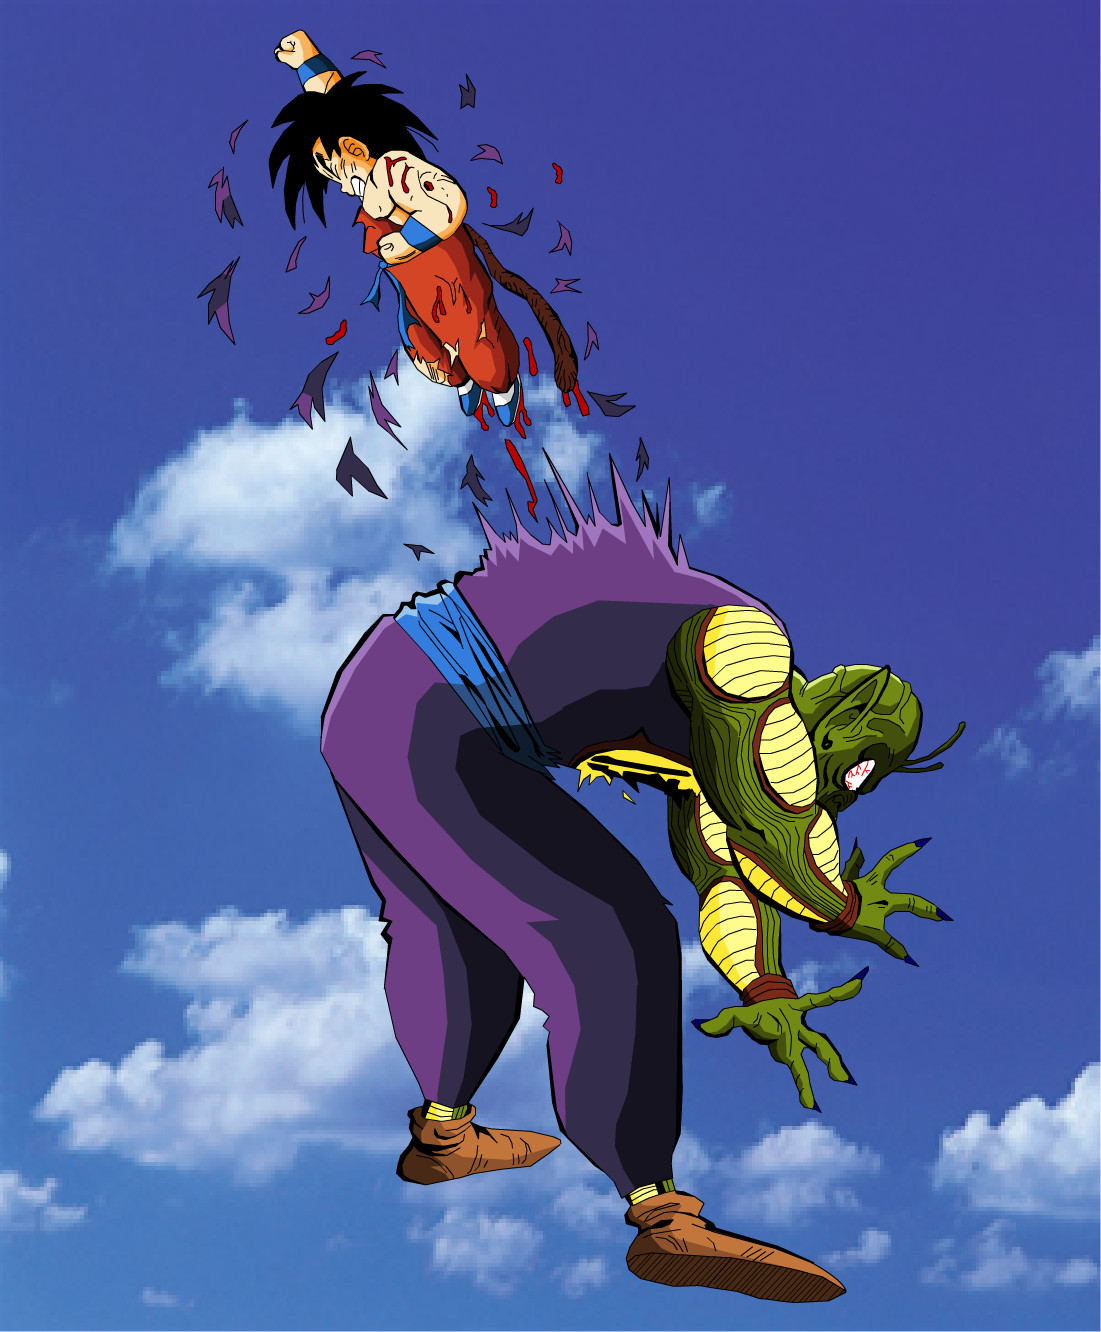 Post your favorite pictures of Dragonball/Z/GT